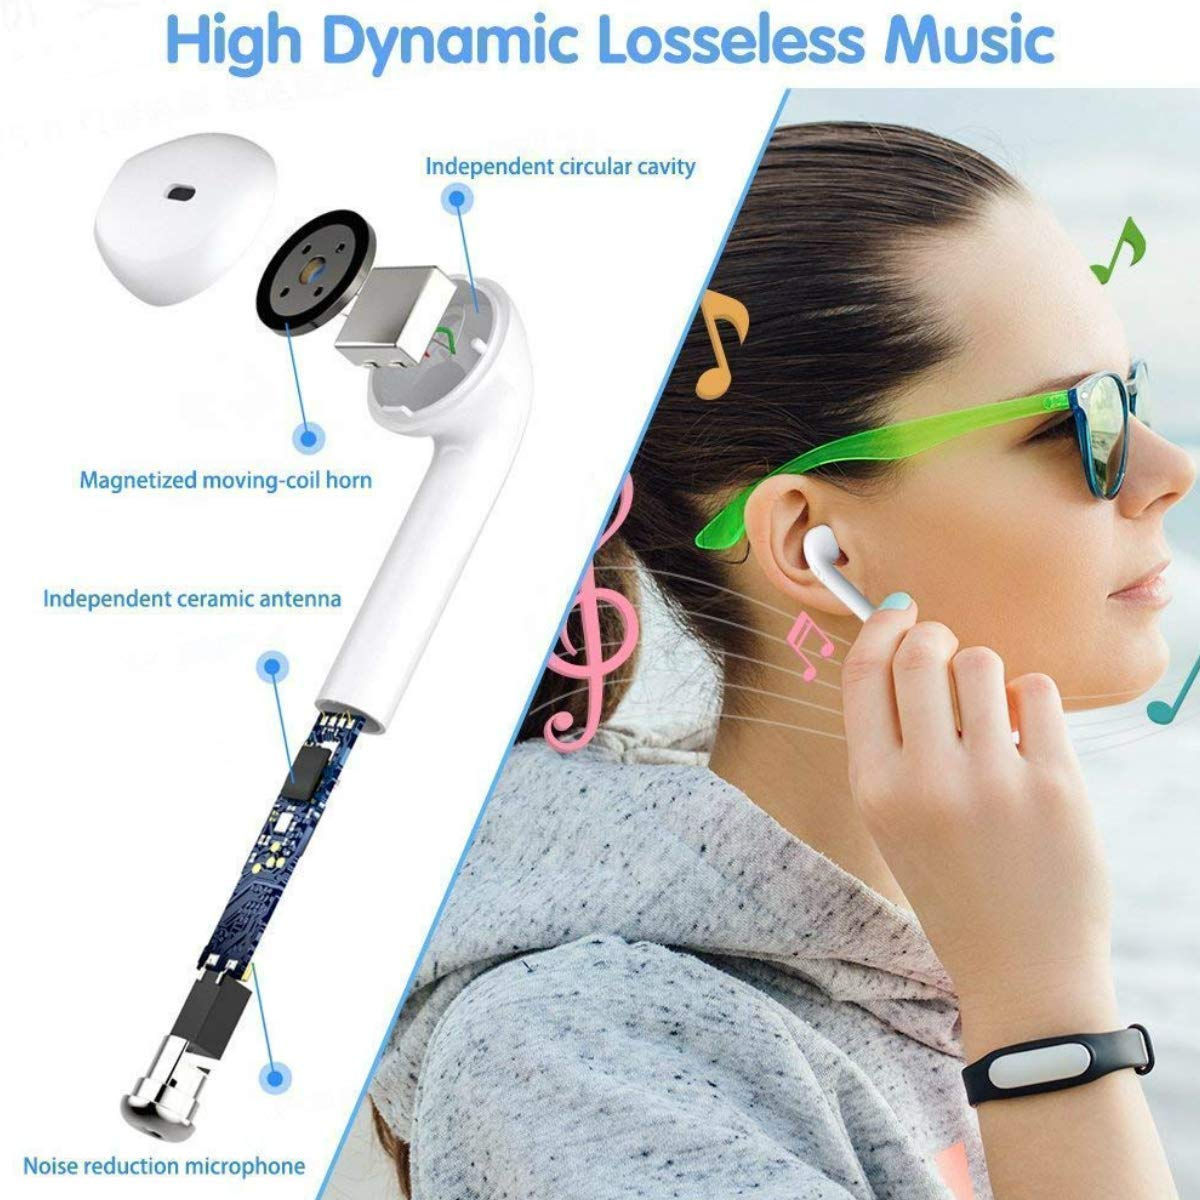 Wireless Earbuds Bluetooth Headphones Built-in Handsfree Mic and Charging Case Noise Cancelling HD Stereo Sport Bluetooth Headset,in-Ear Headphones for iPhone Airpods Android Samsung